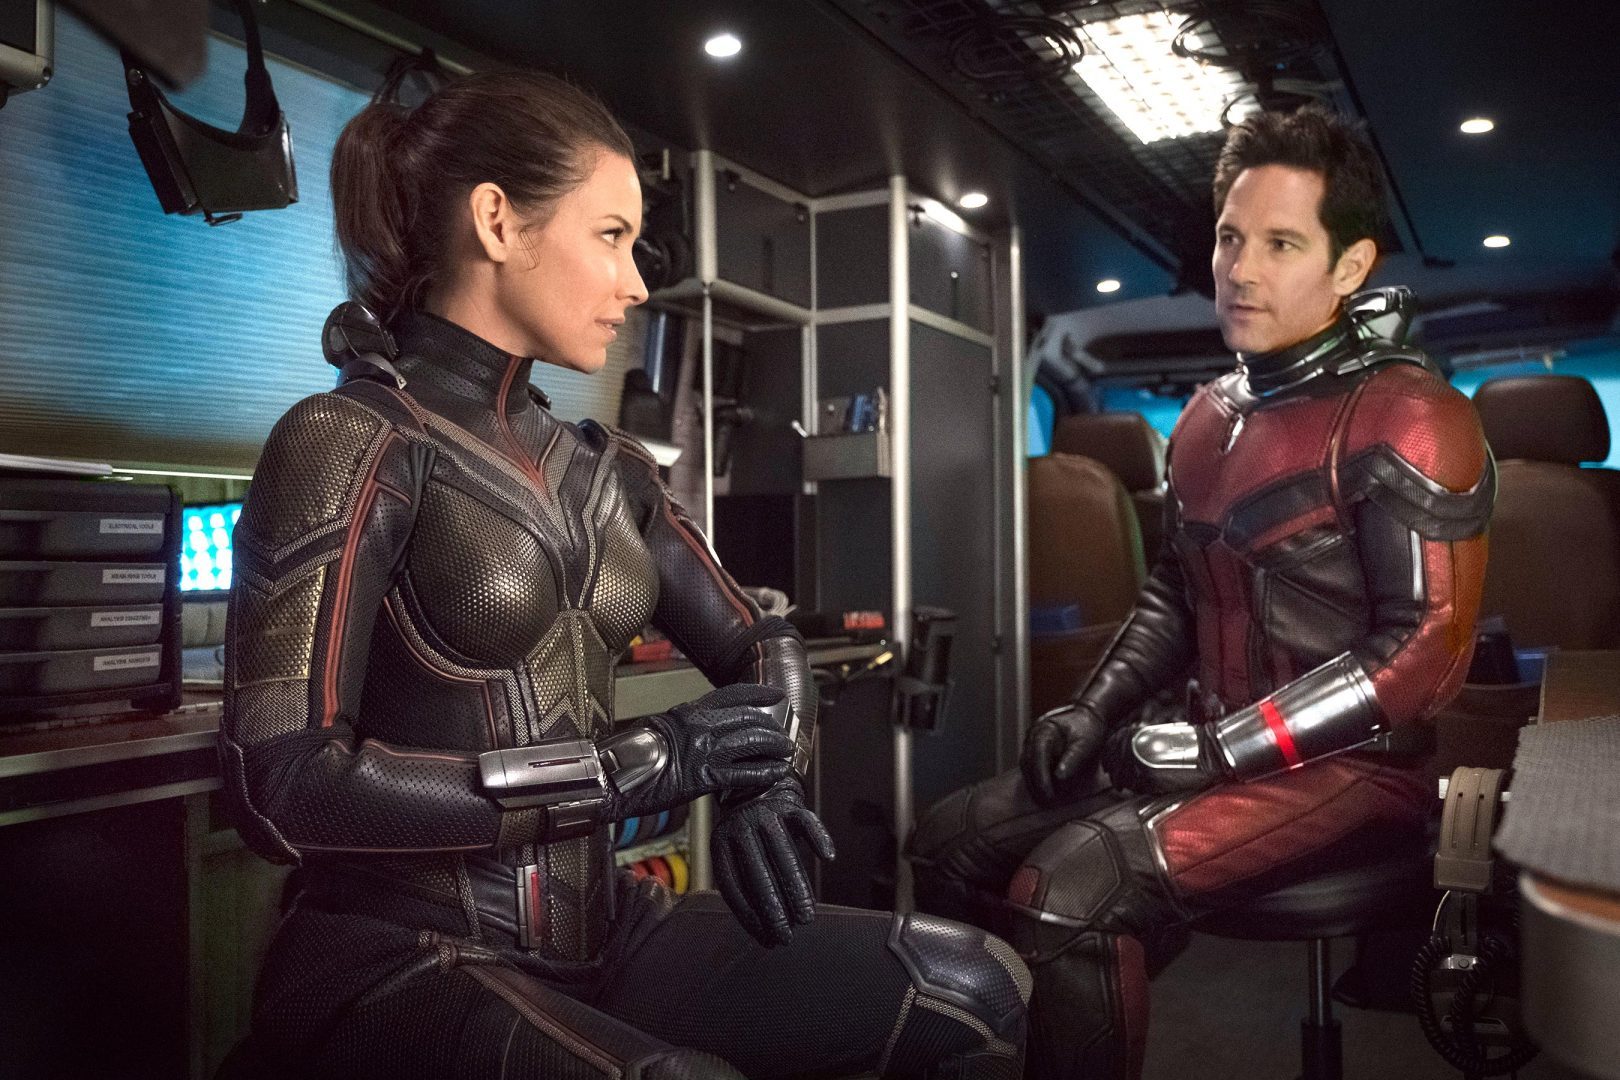 Nuova Featurette per Ant-Man and the Wasp